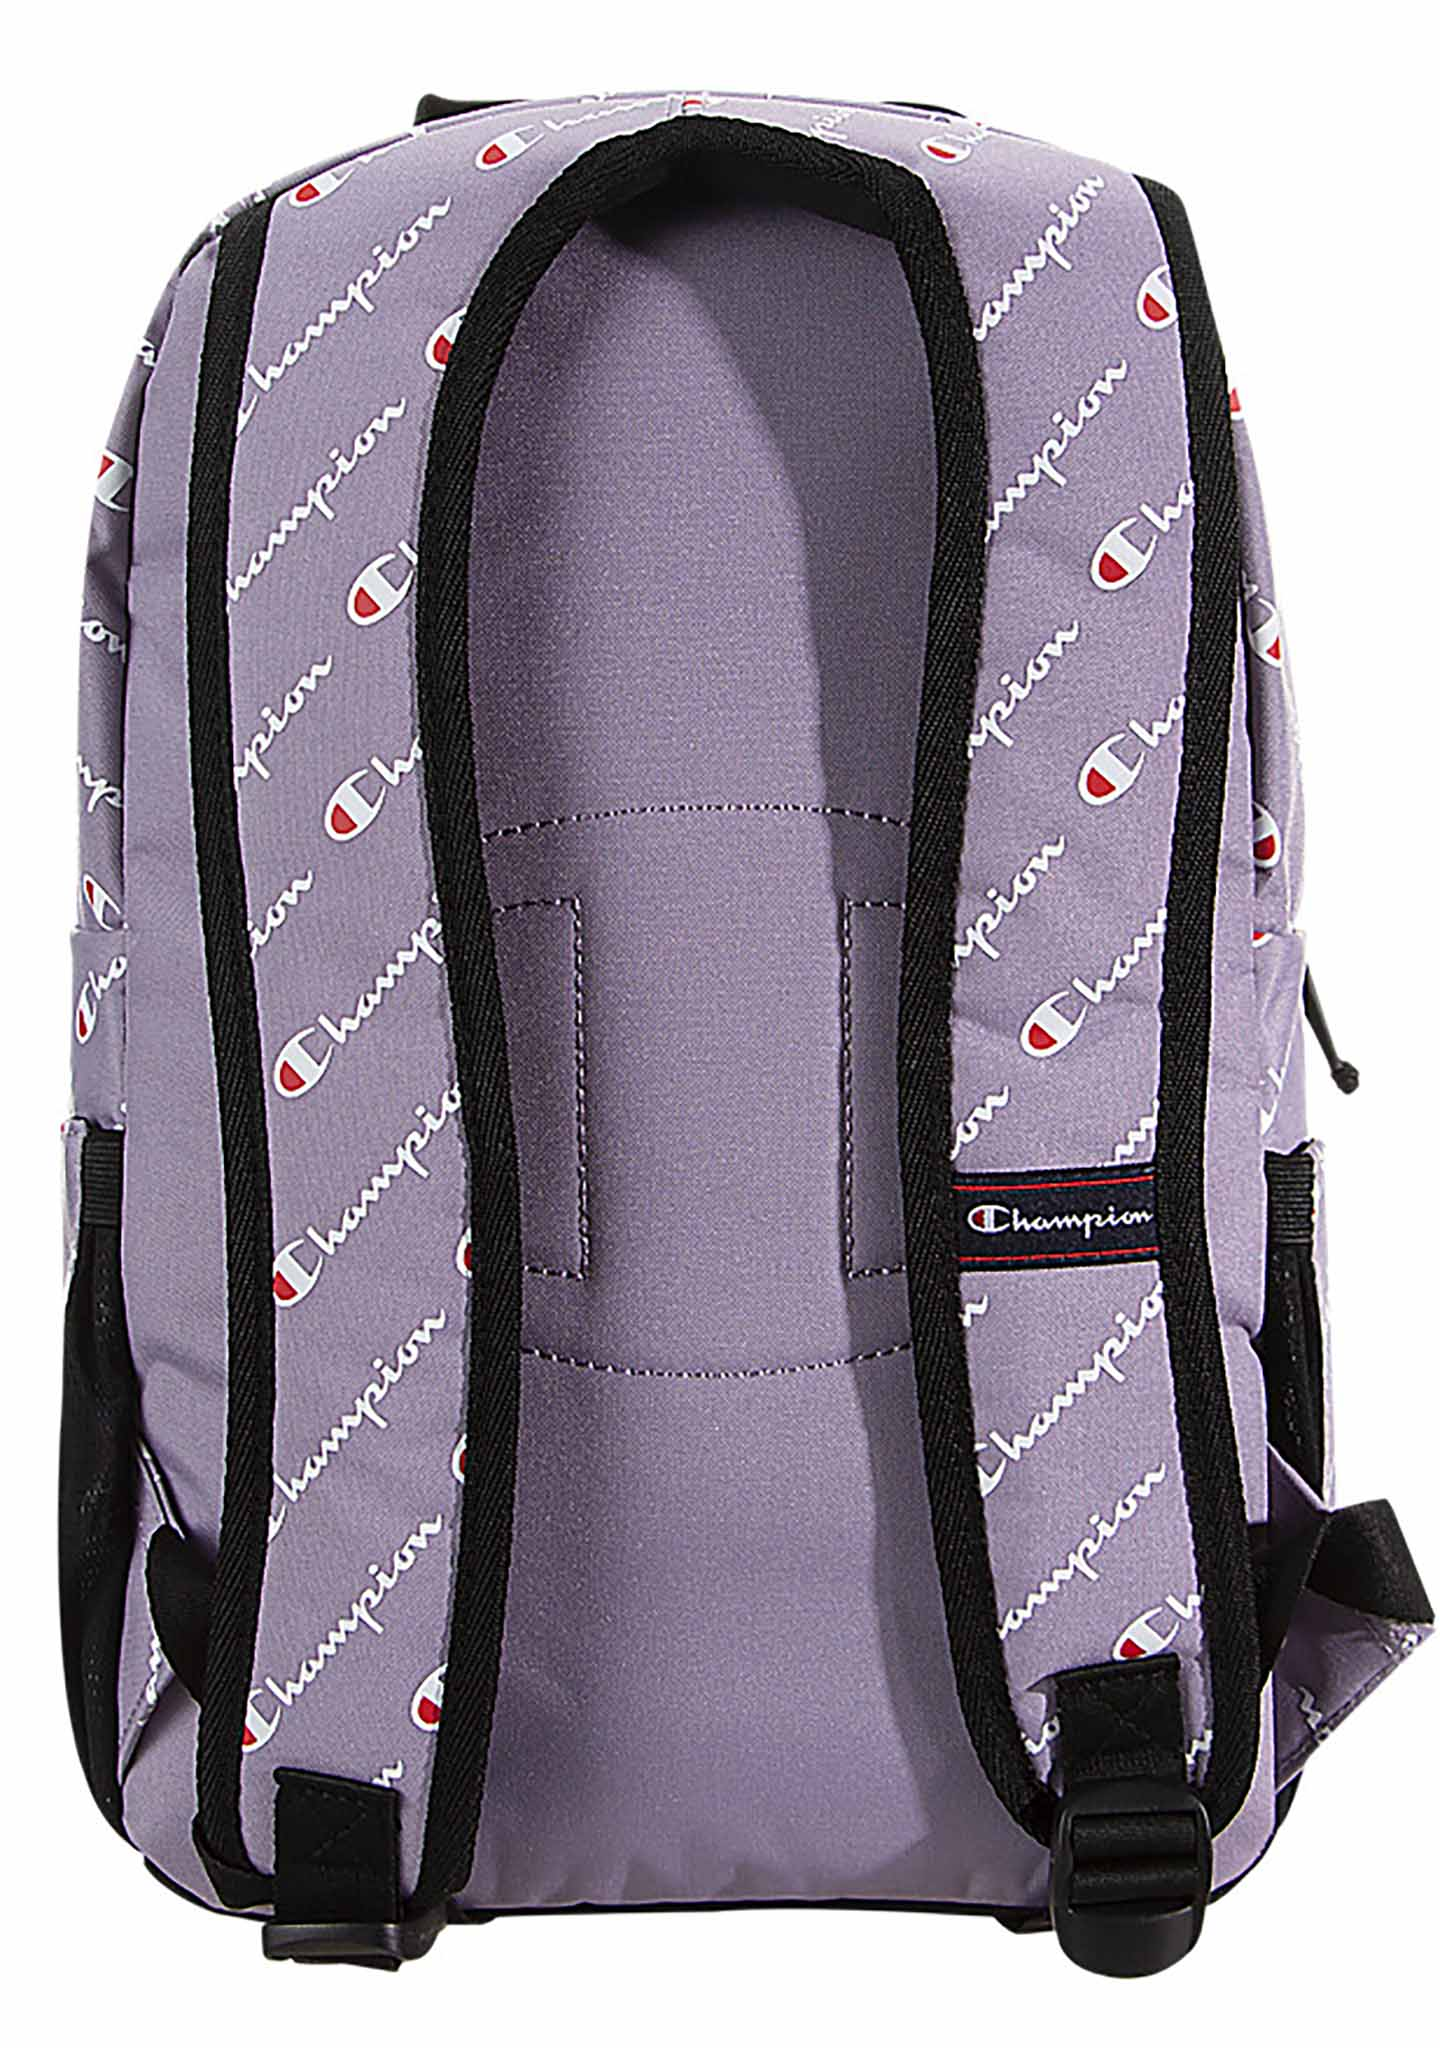 Mini Advocate Backpack in Smoke Purple